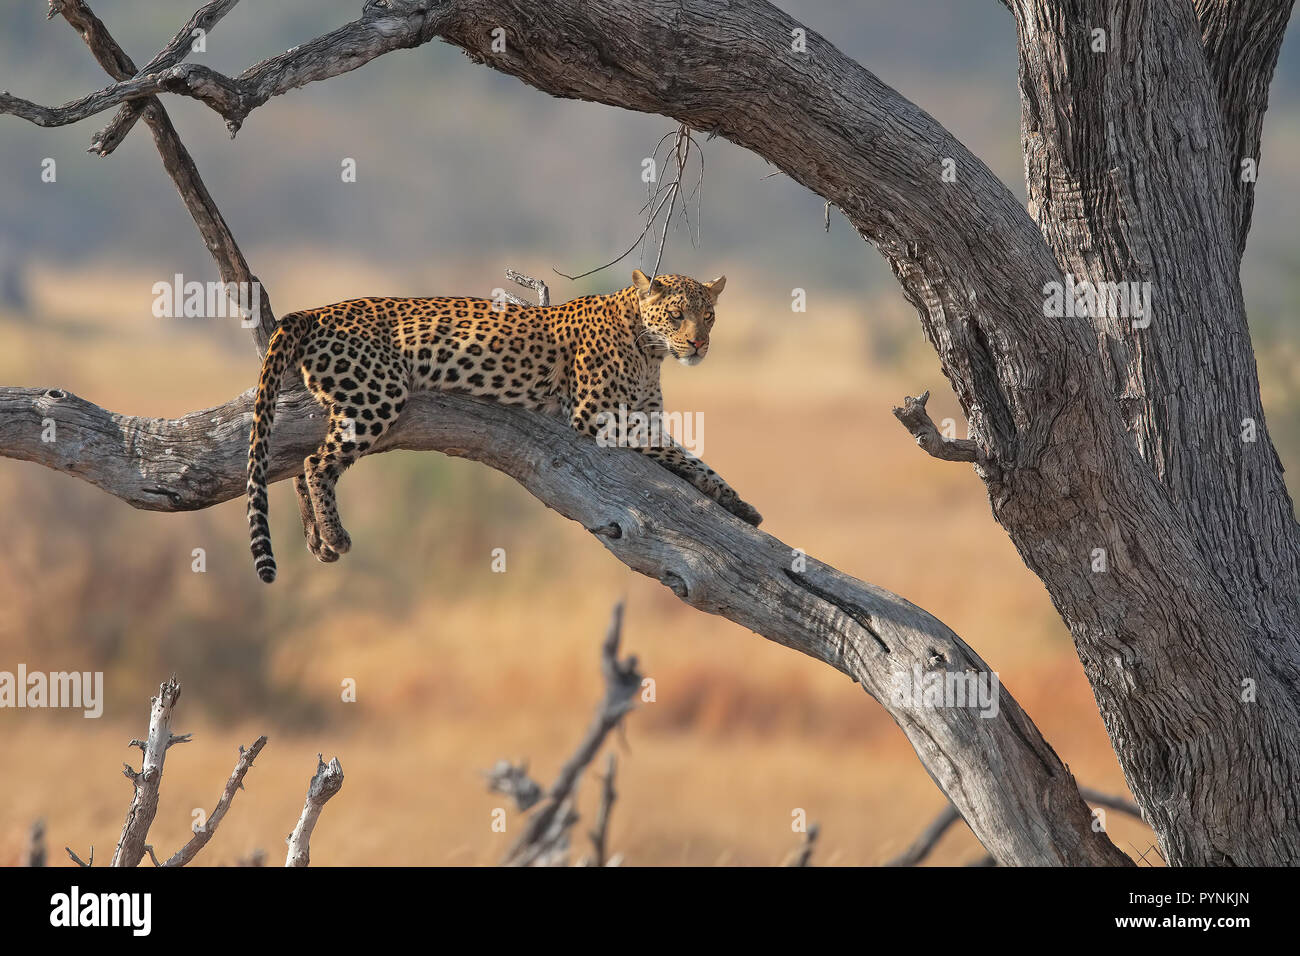 Leopard in Moremi - Stock Image